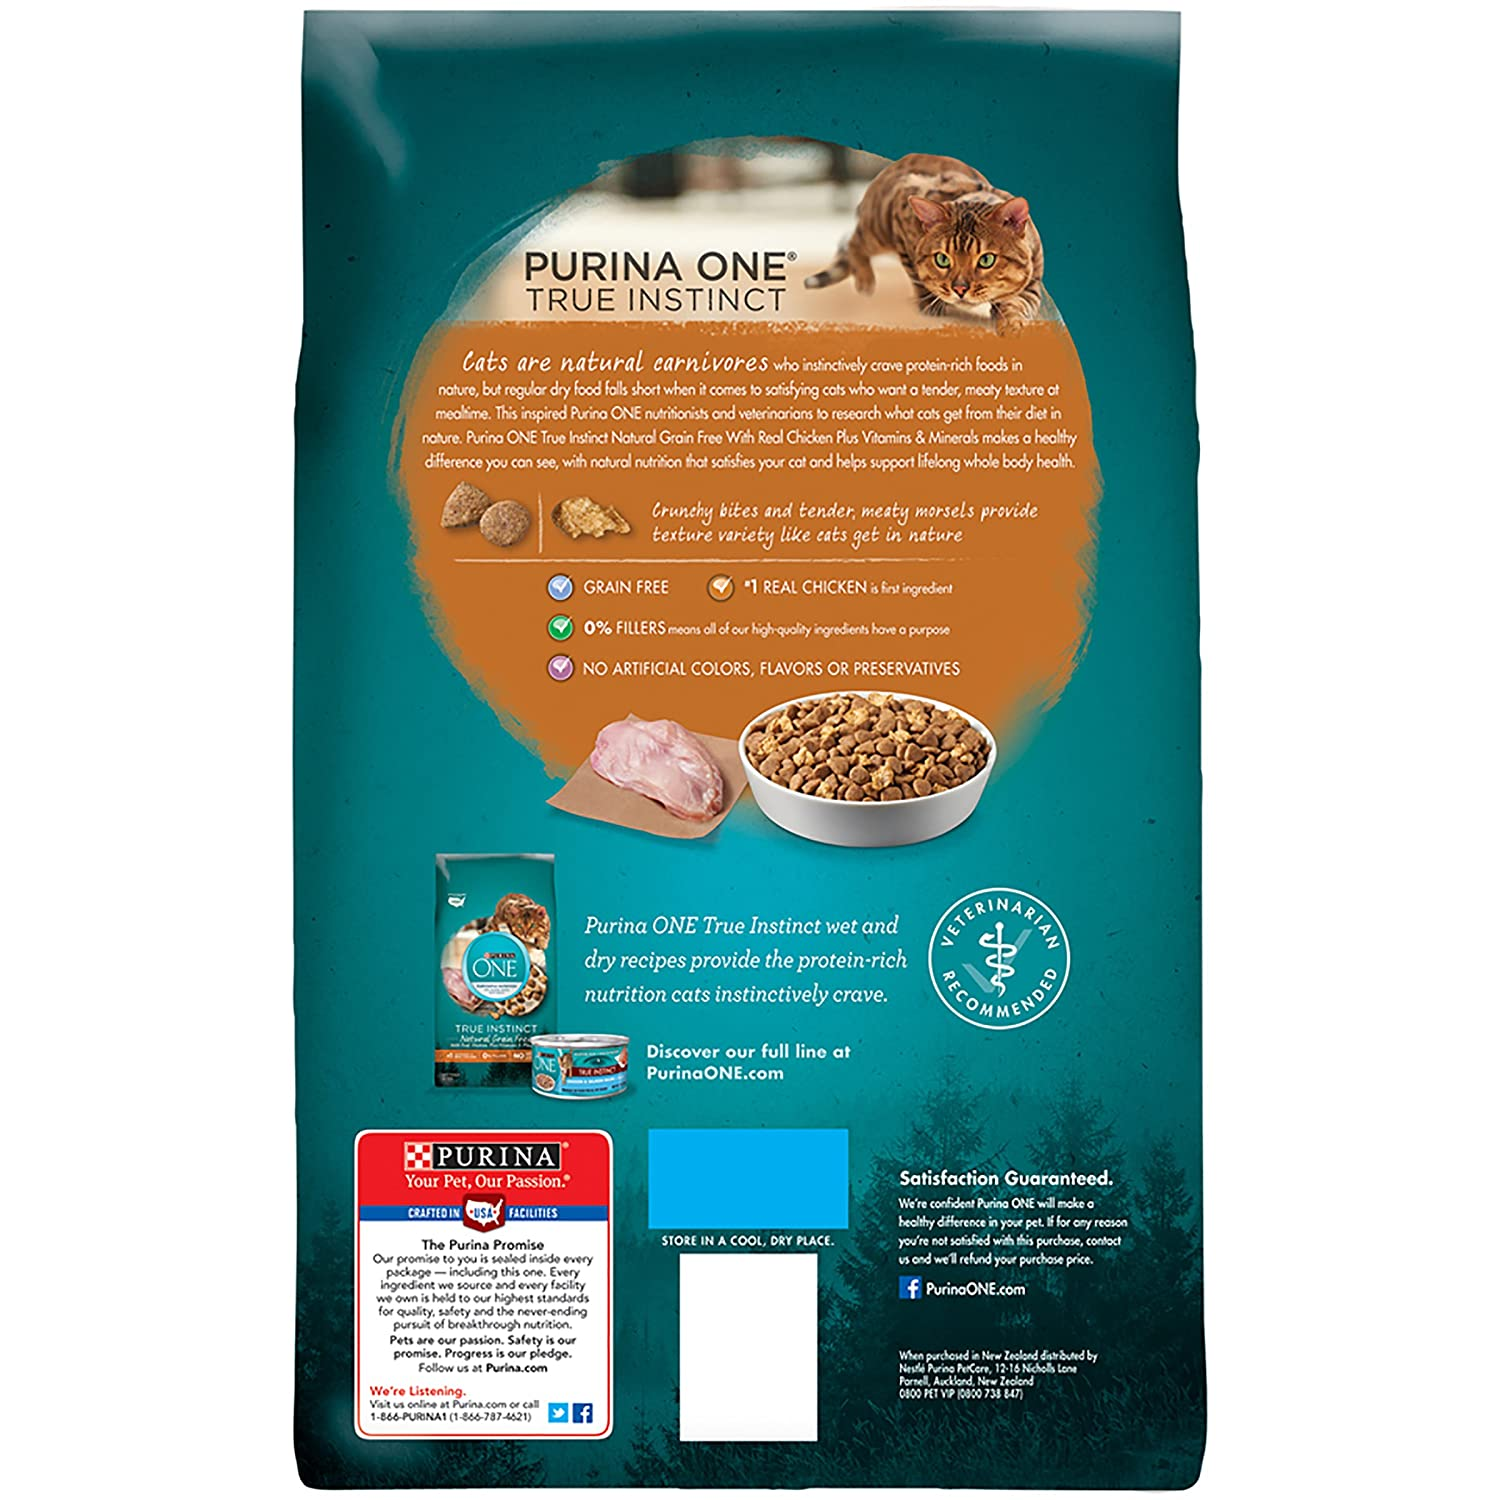 Food Purina Van for cats (Purina One): composition, reviews